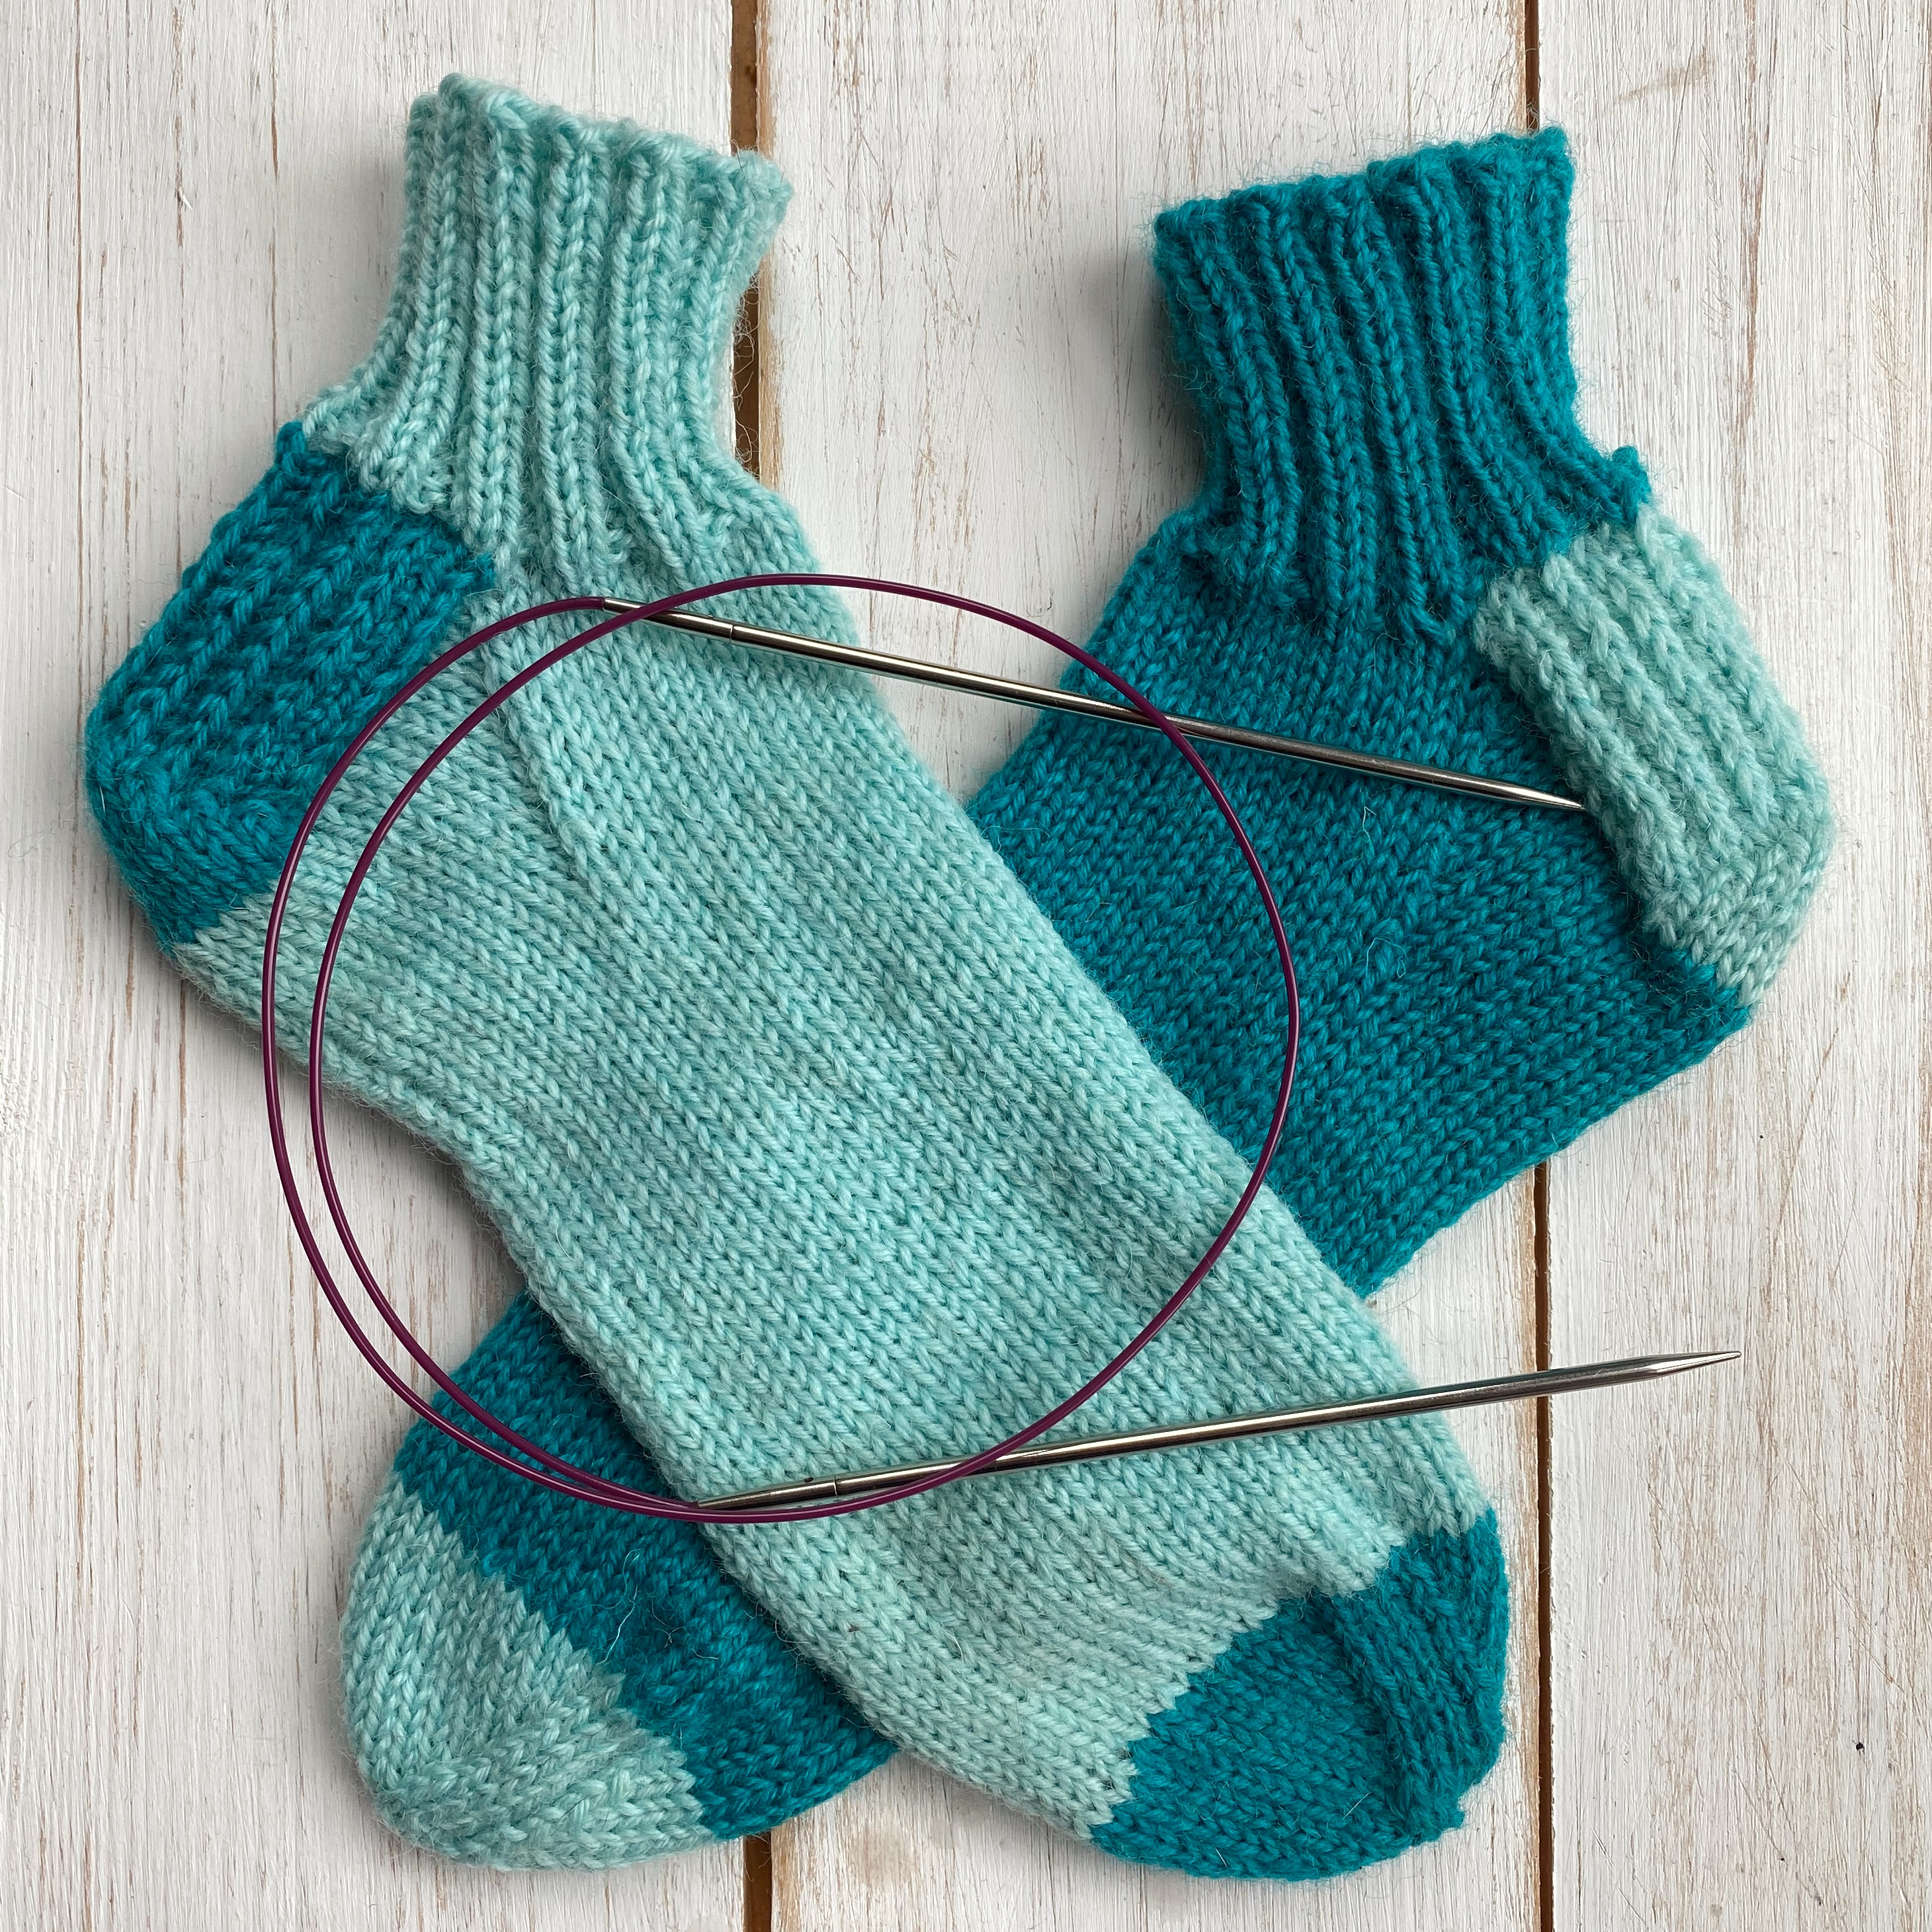 two hand knitted socks and a circular knitting needle